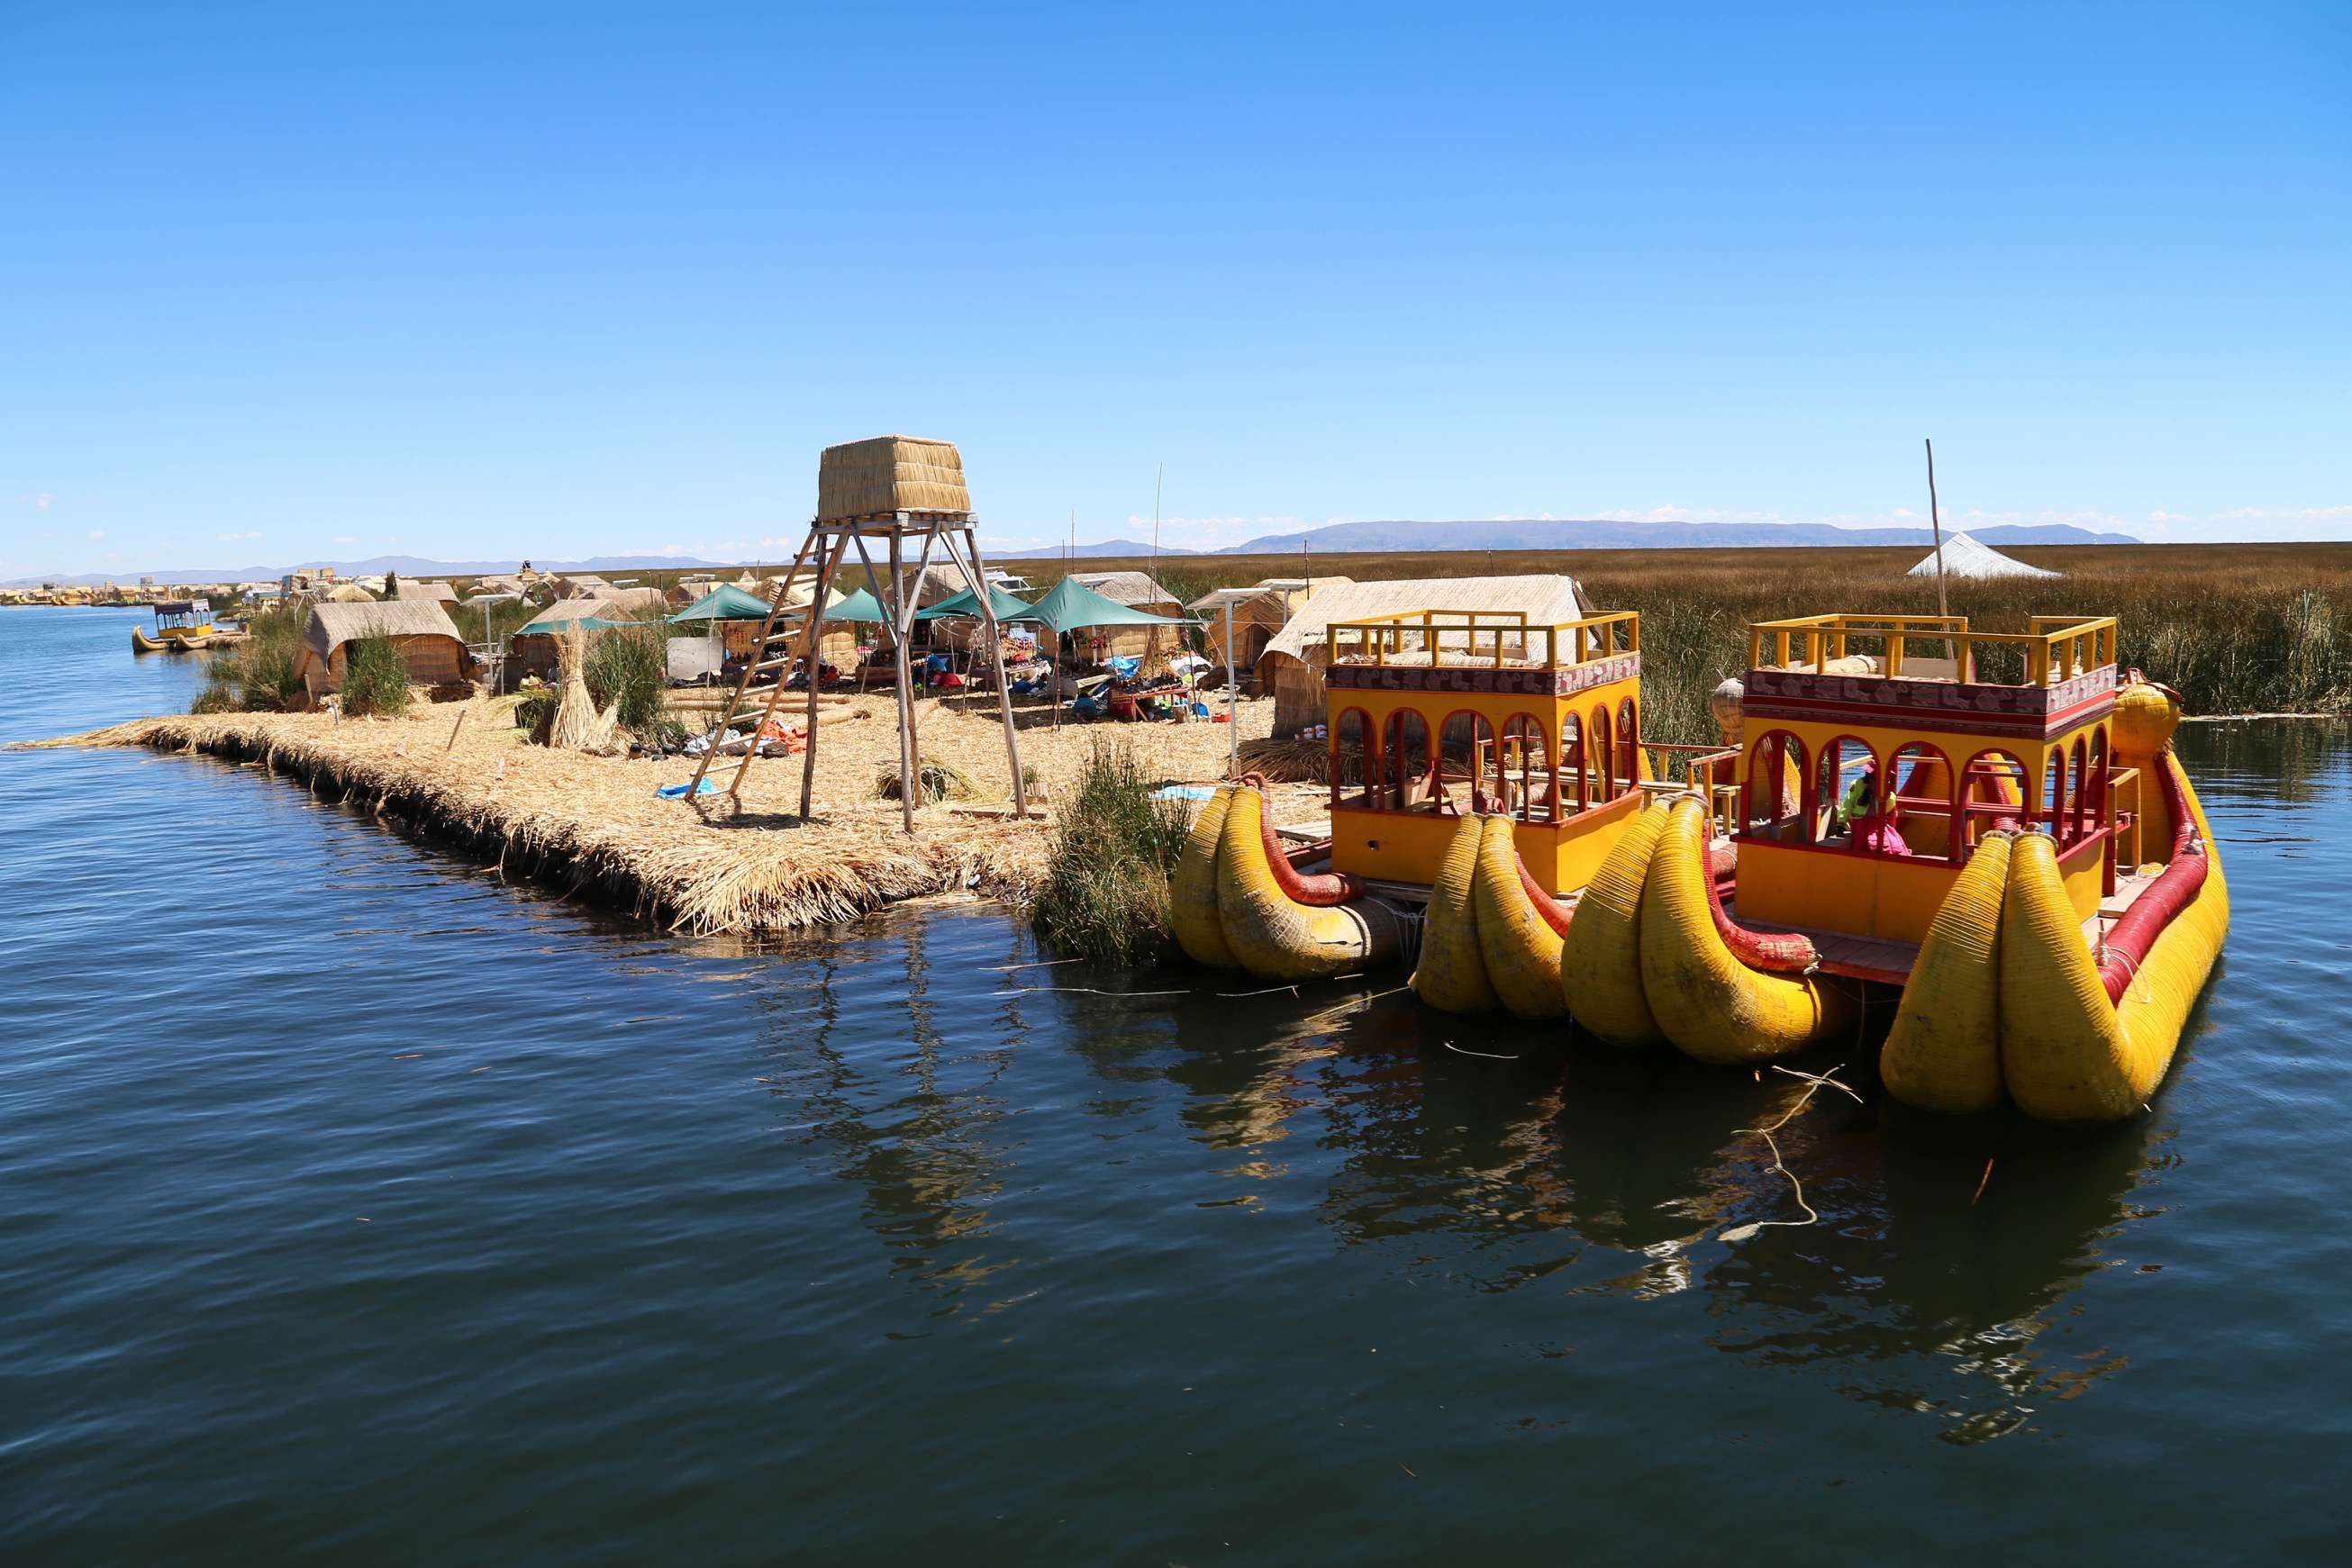 The Uros people have been living on floating islands for thousands of years, built out of reeds.